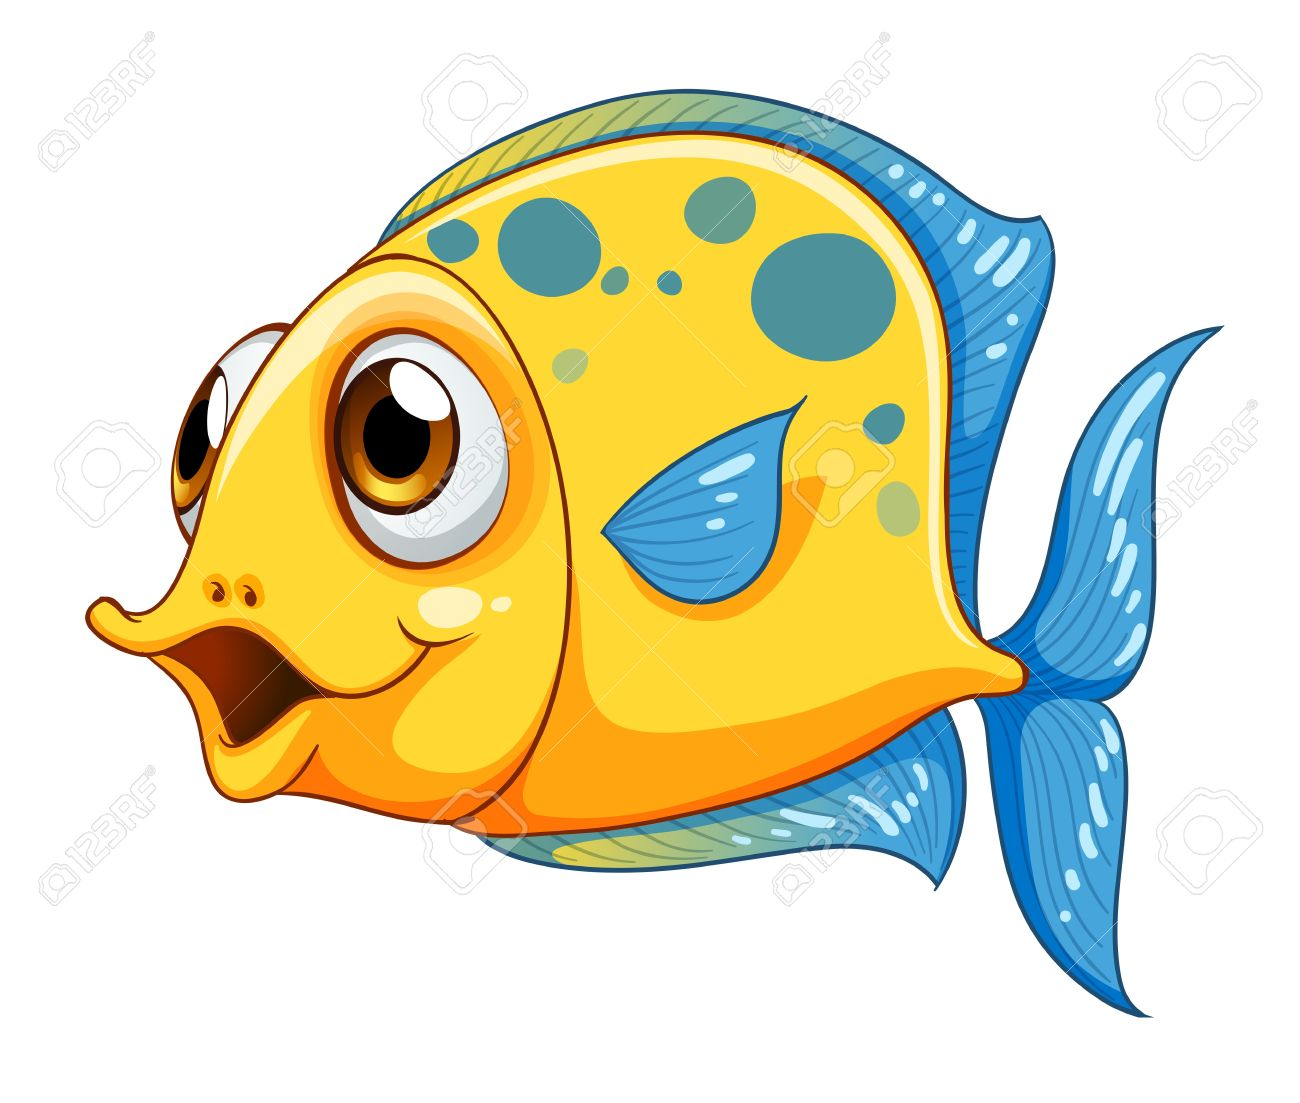 Illustration of a small yellow fish on a white background Stock Vector - 21094918